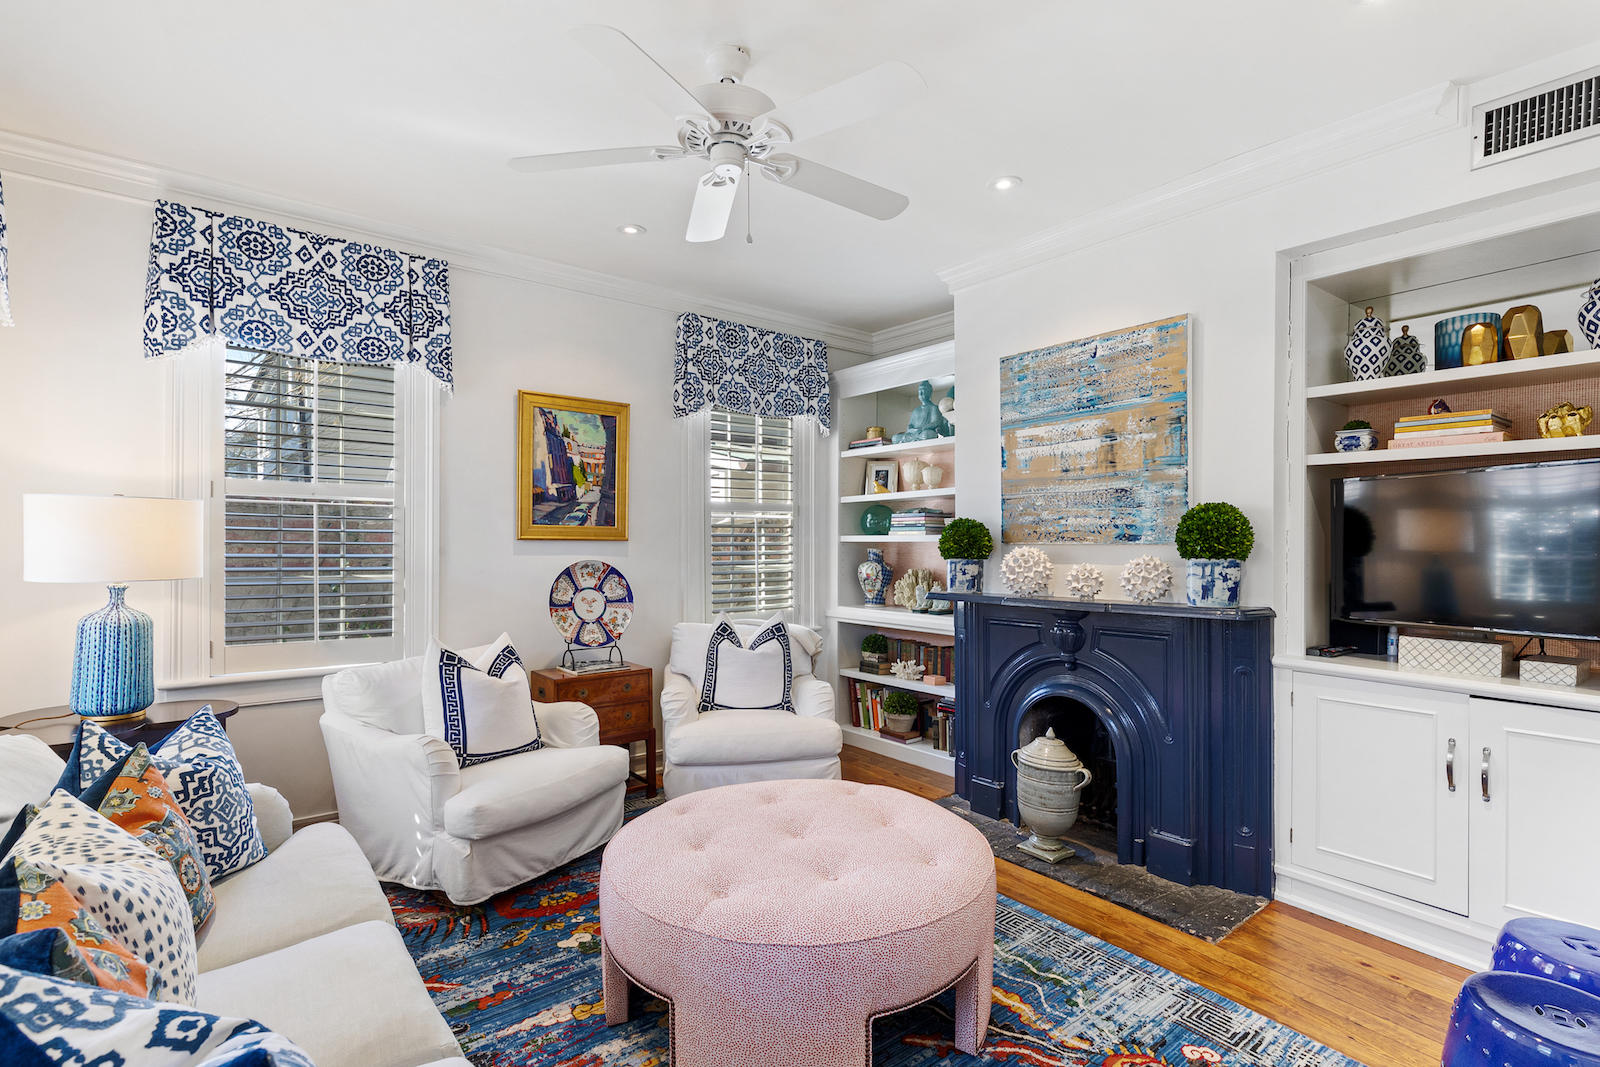 Crafts House Homes For Sale - 125 1/2 Queen, Charleston, SC - 27